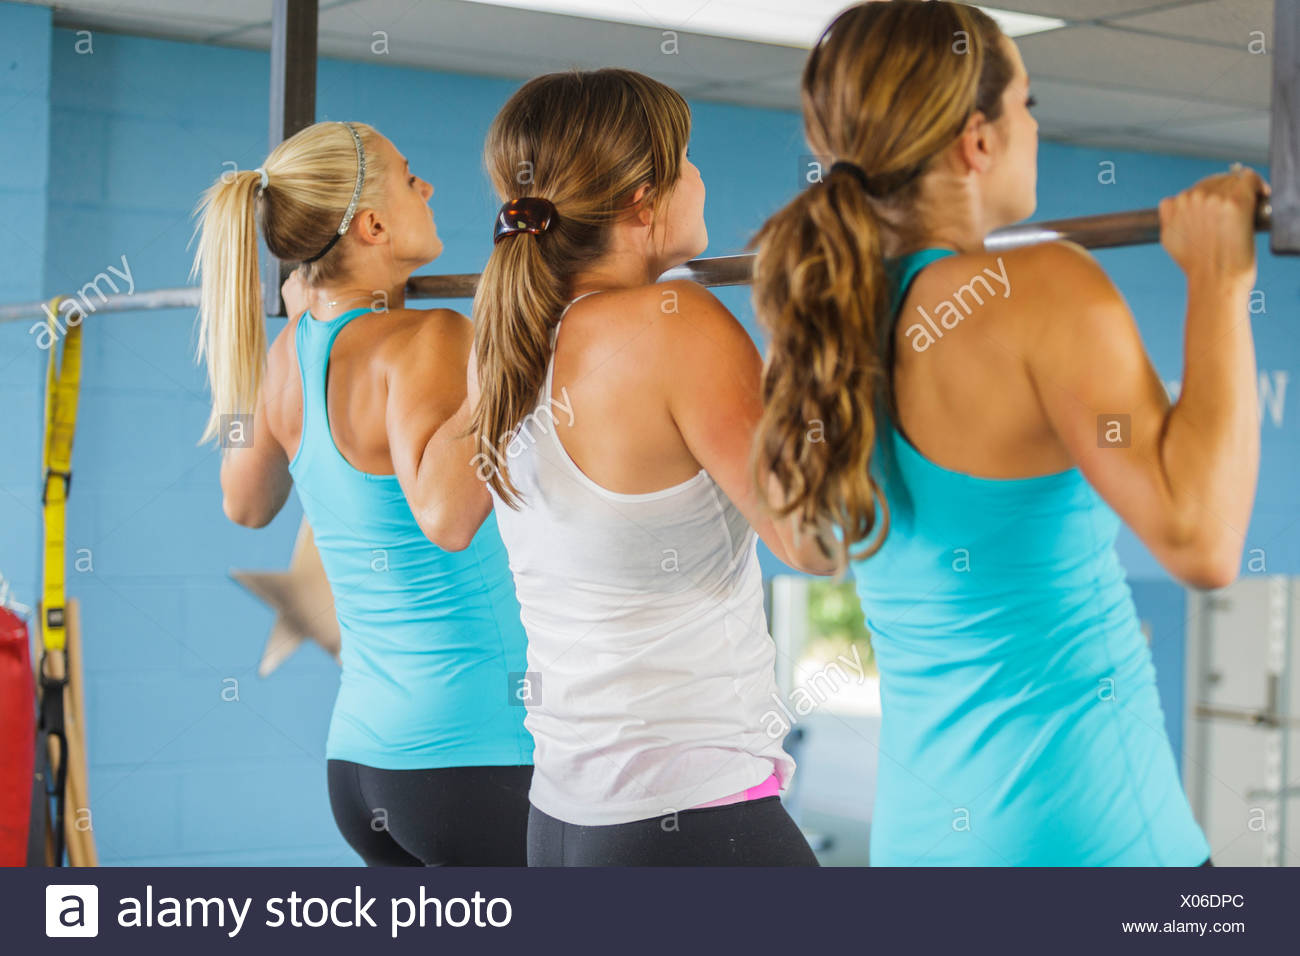 Personal trainers at work in a private workout studio. - Stock Image